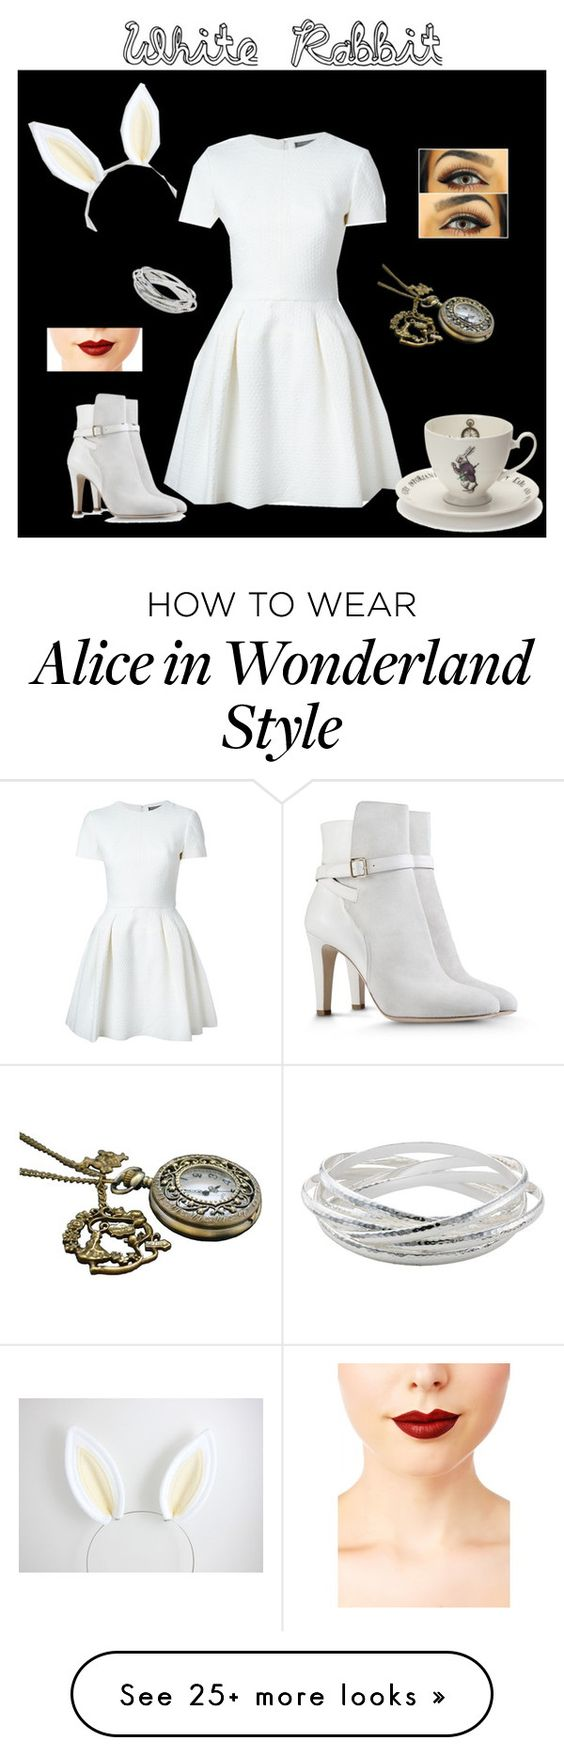 """Follow the White Rabbit"" by emmariestyle on Polyvore featuring mode, Alexander McQueen, Mrs Moore's Vintage Store, Alberta Ferretti, John Lewis en Jeffree Star"